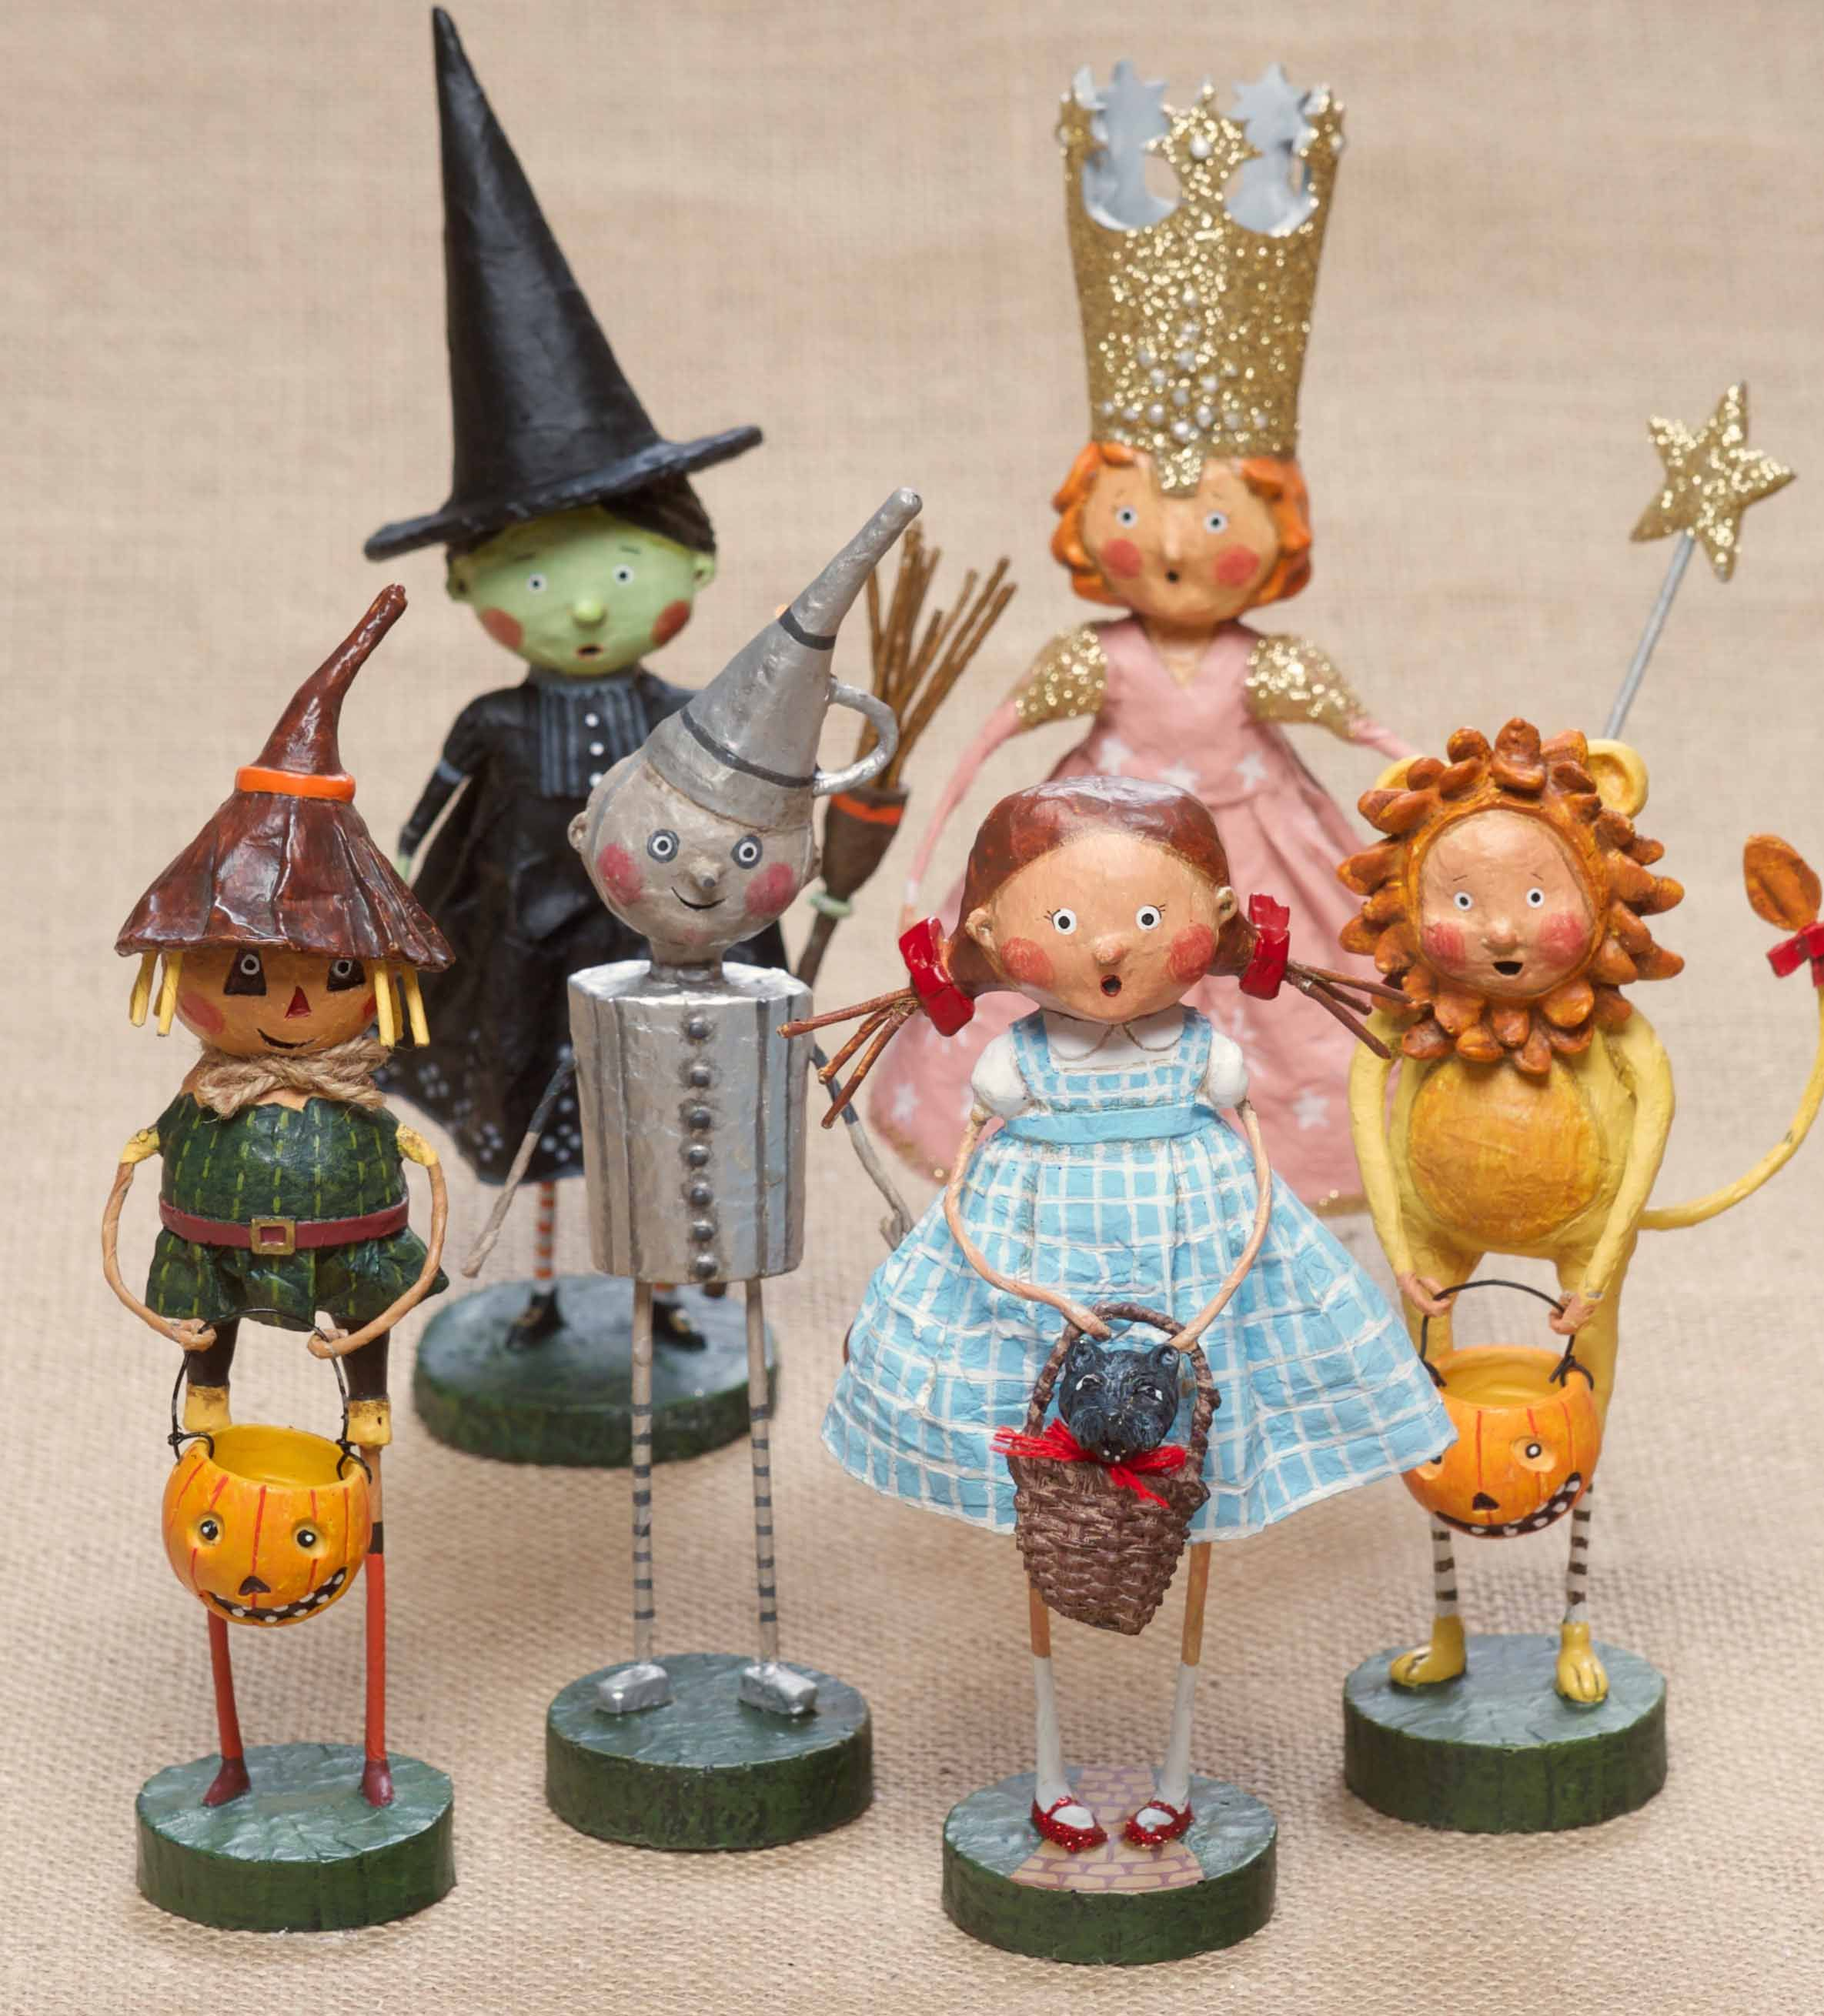 Wizard of Oz Collection by Lori Mitchell for ESC wwwescandcompany